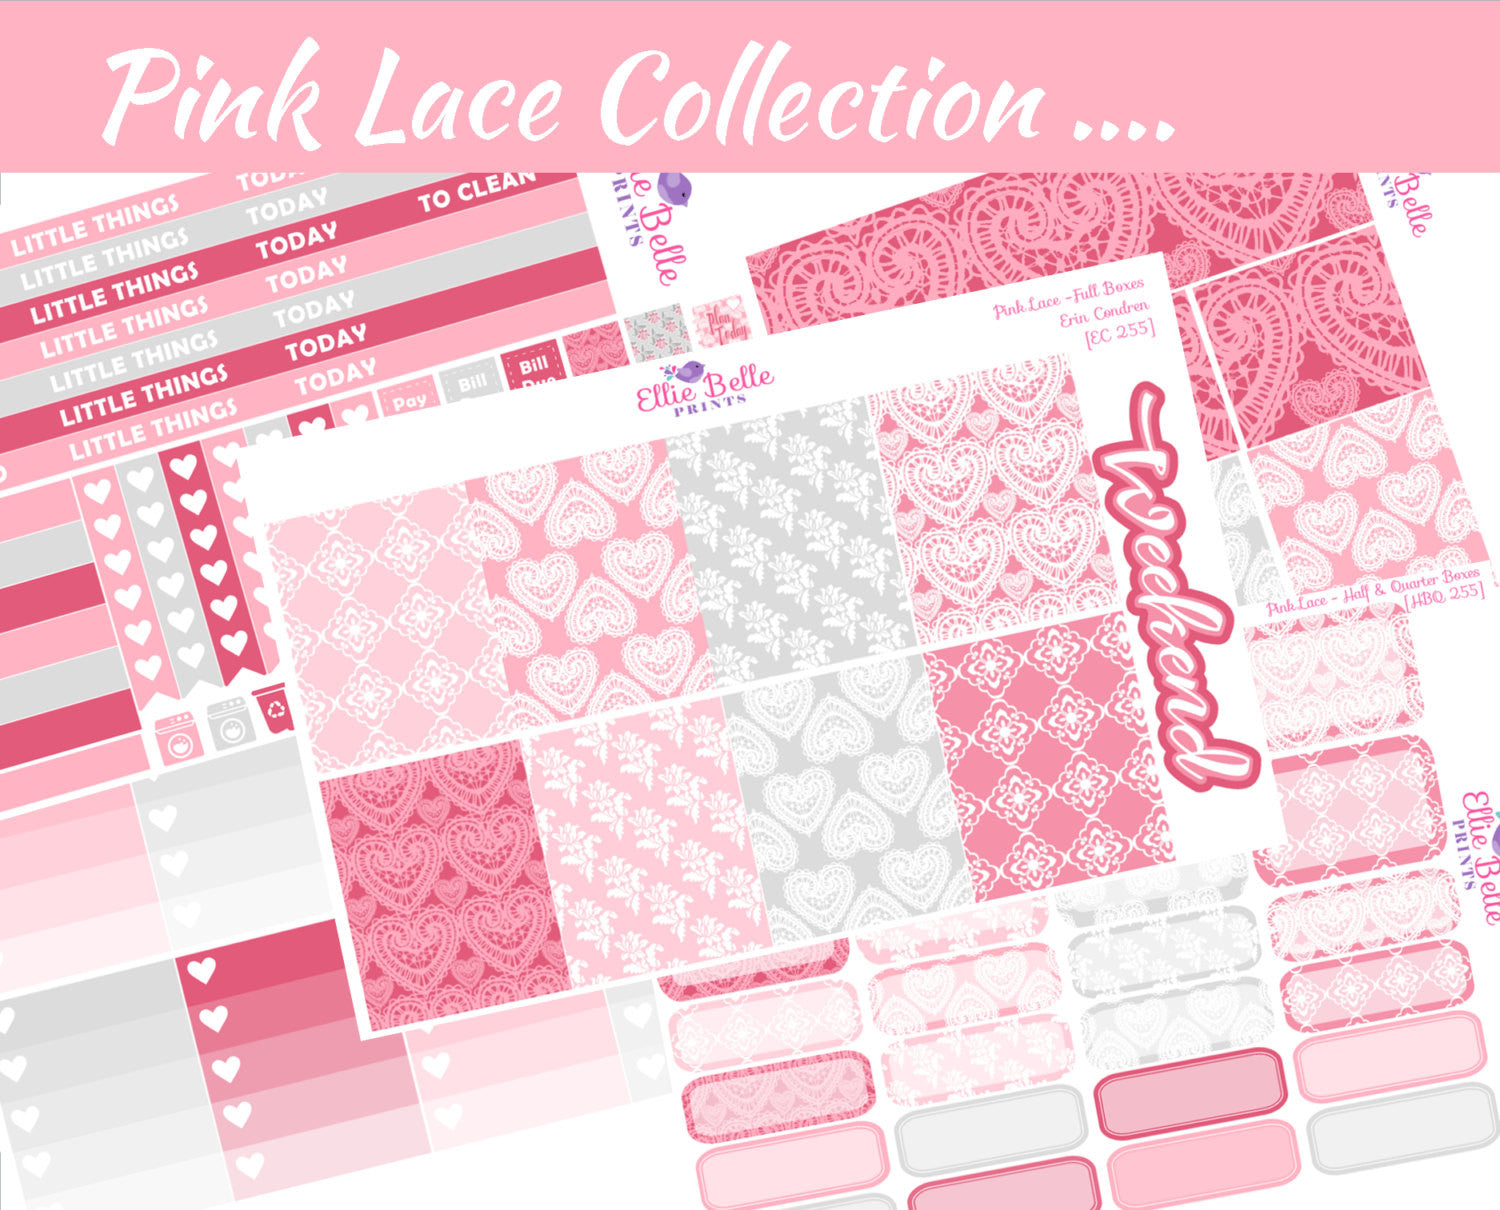 PINK LACE COLLECTION - Vertical Weekly Planner Kit [255]